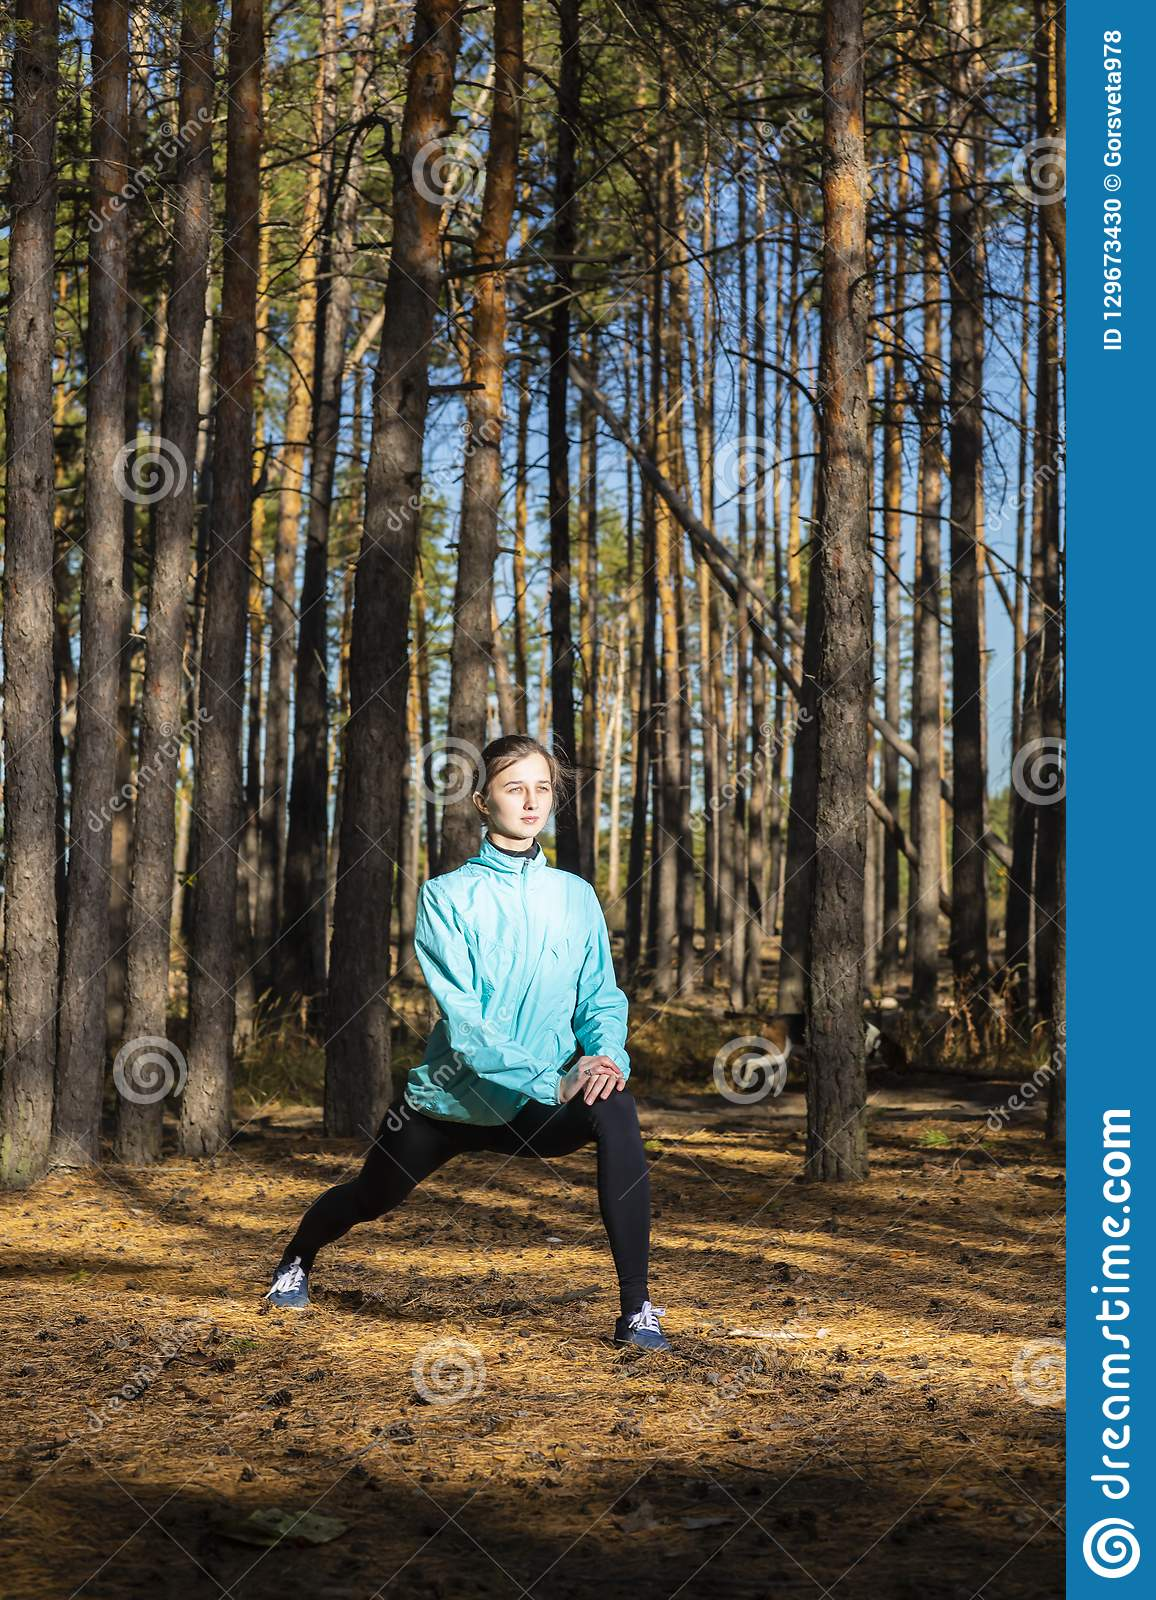 Woman, lifestyle, nature, exercise, fresh air, outdoor